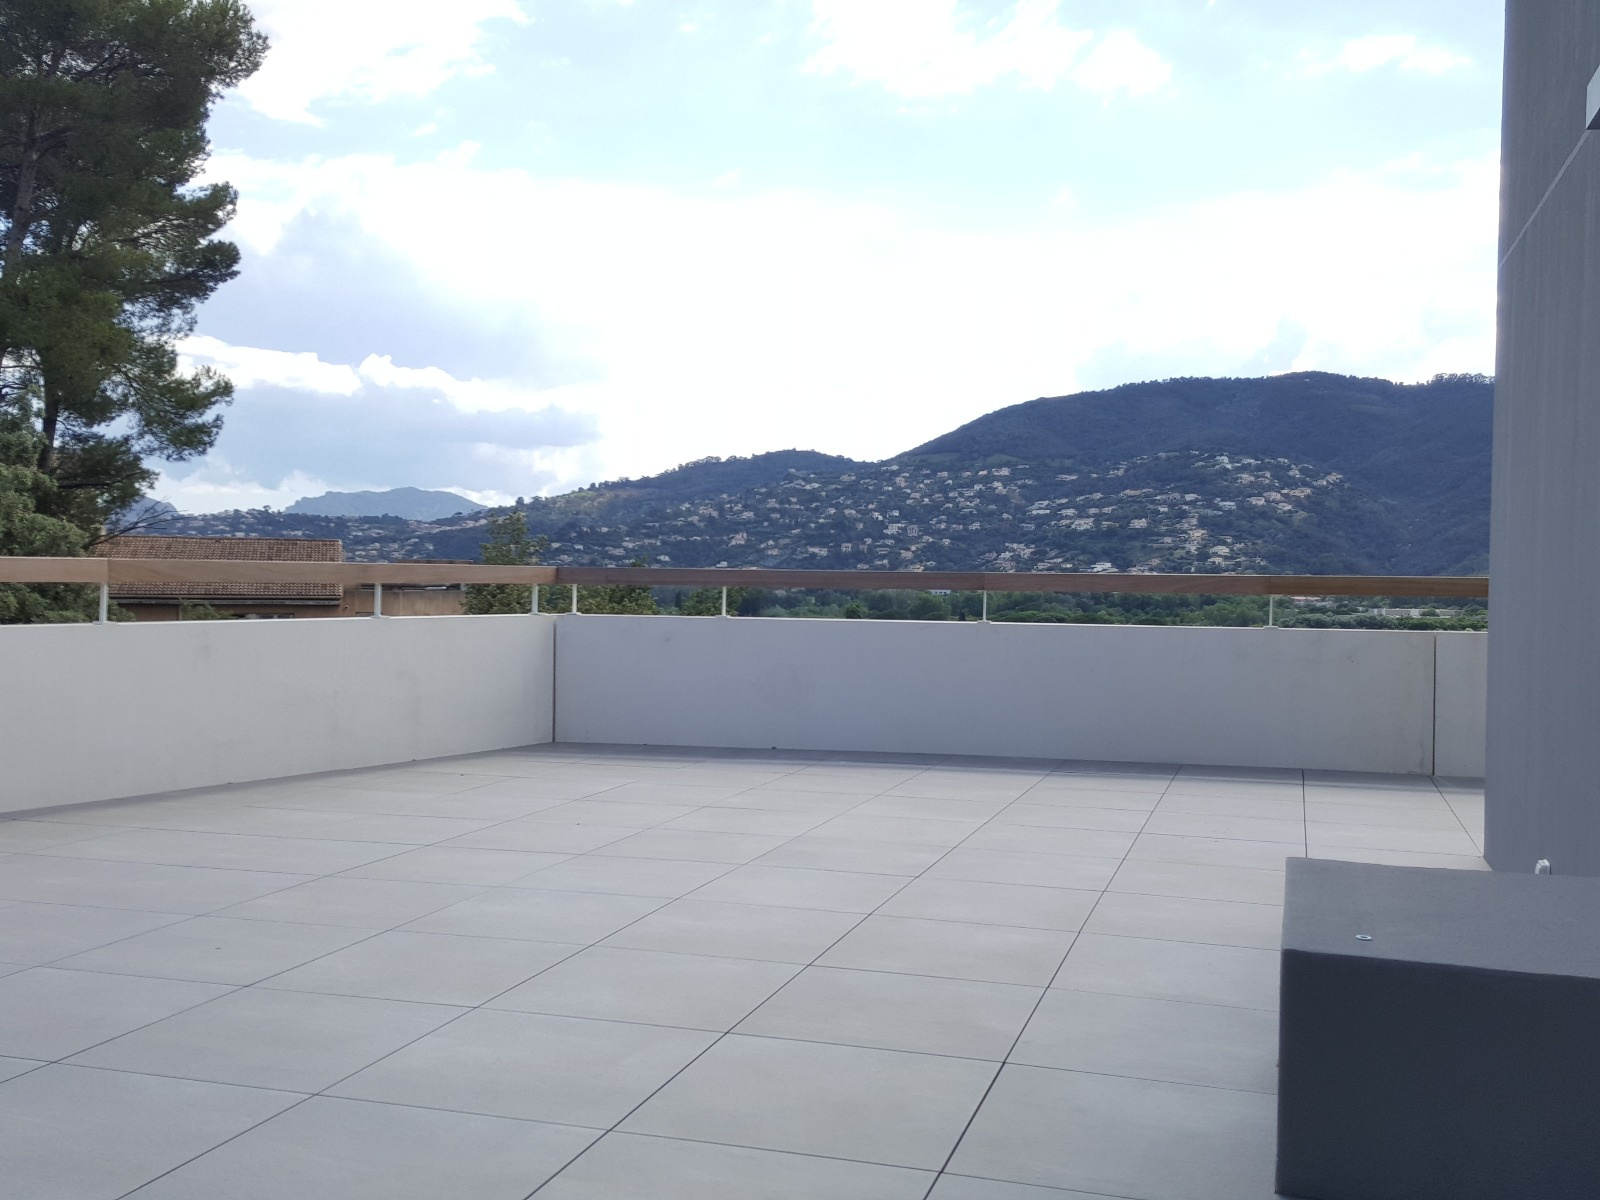 Appartement Toit Terrasse Cannes Location Appartement A Louer 3 Pieces Toit Terrasse